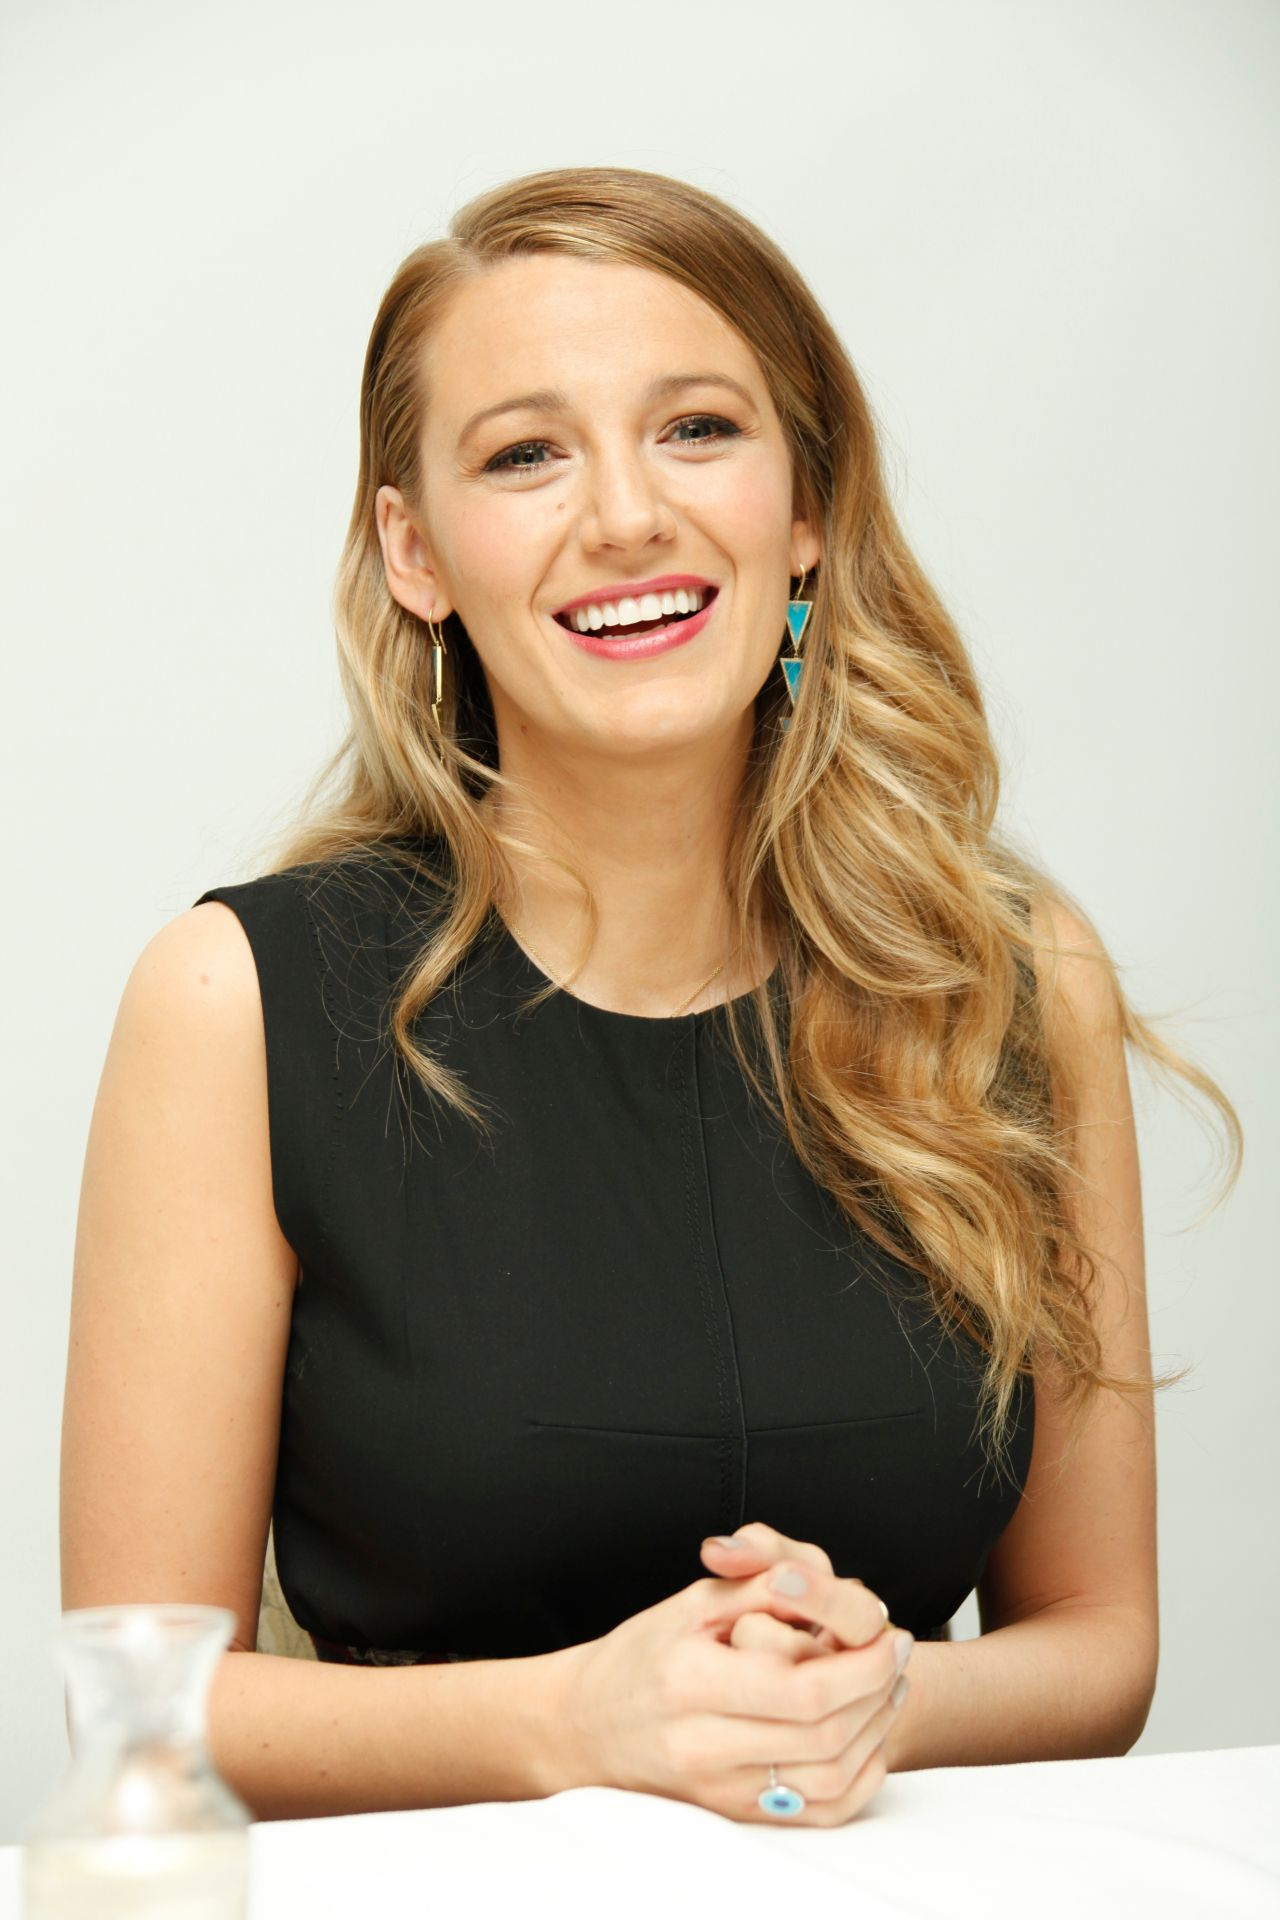 Blake Lively - Age Of ...